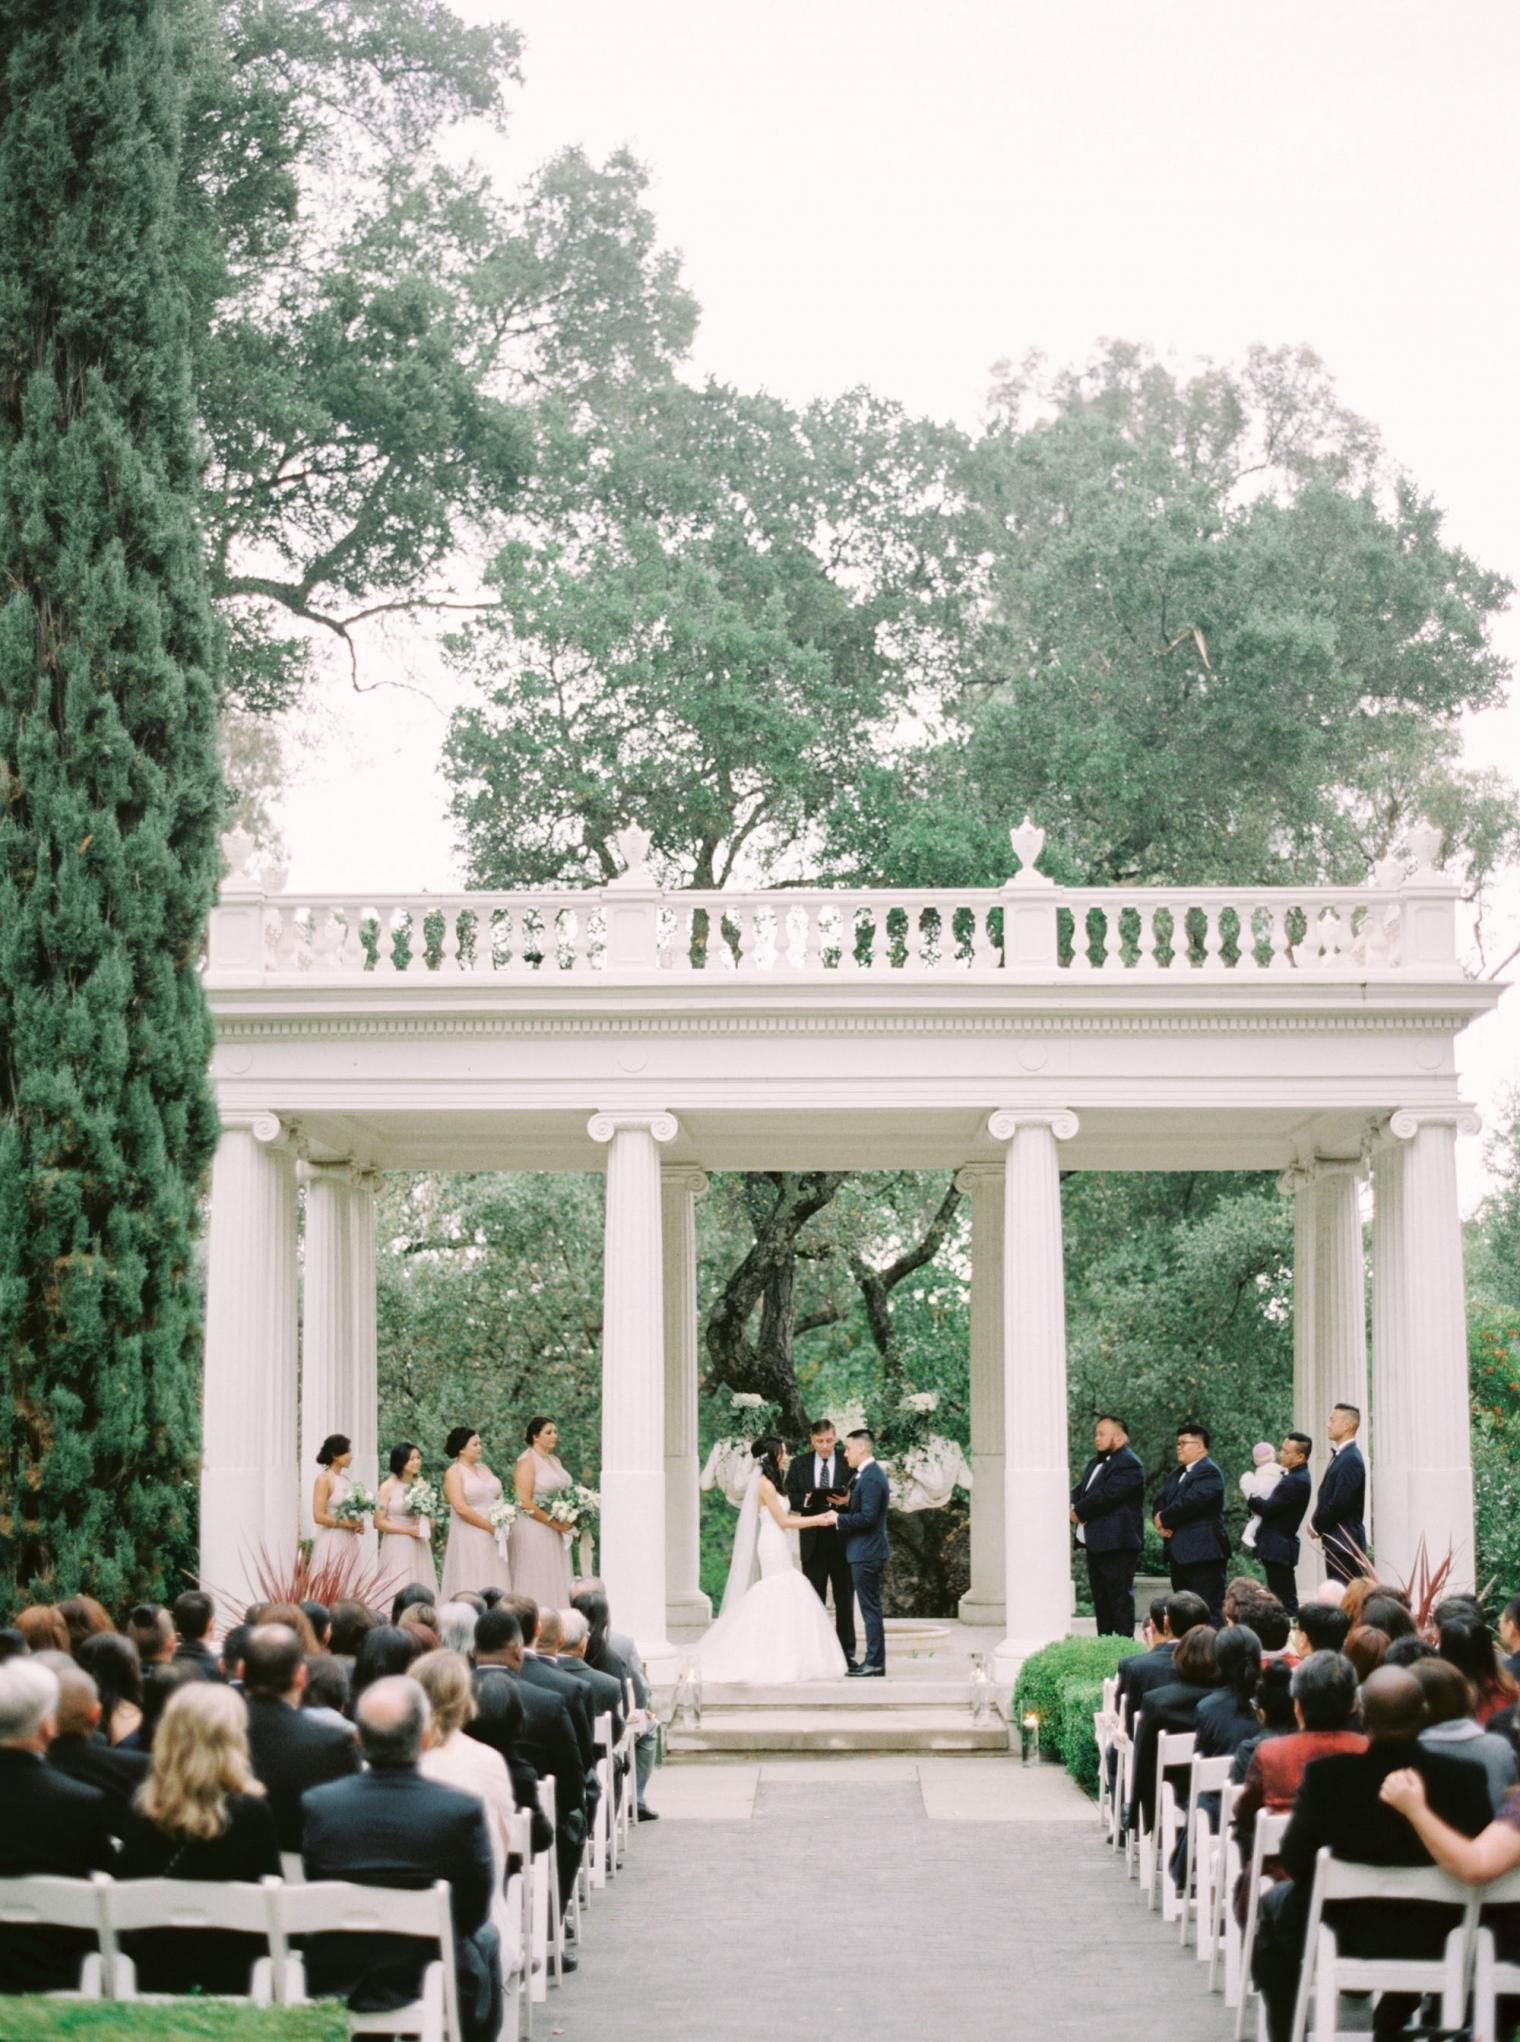 25 Of The Bay Area S Most Stunning Wedding Venues Bay Area Wedding Venues Northern California Wedding Venues Stunning Wedding Venues